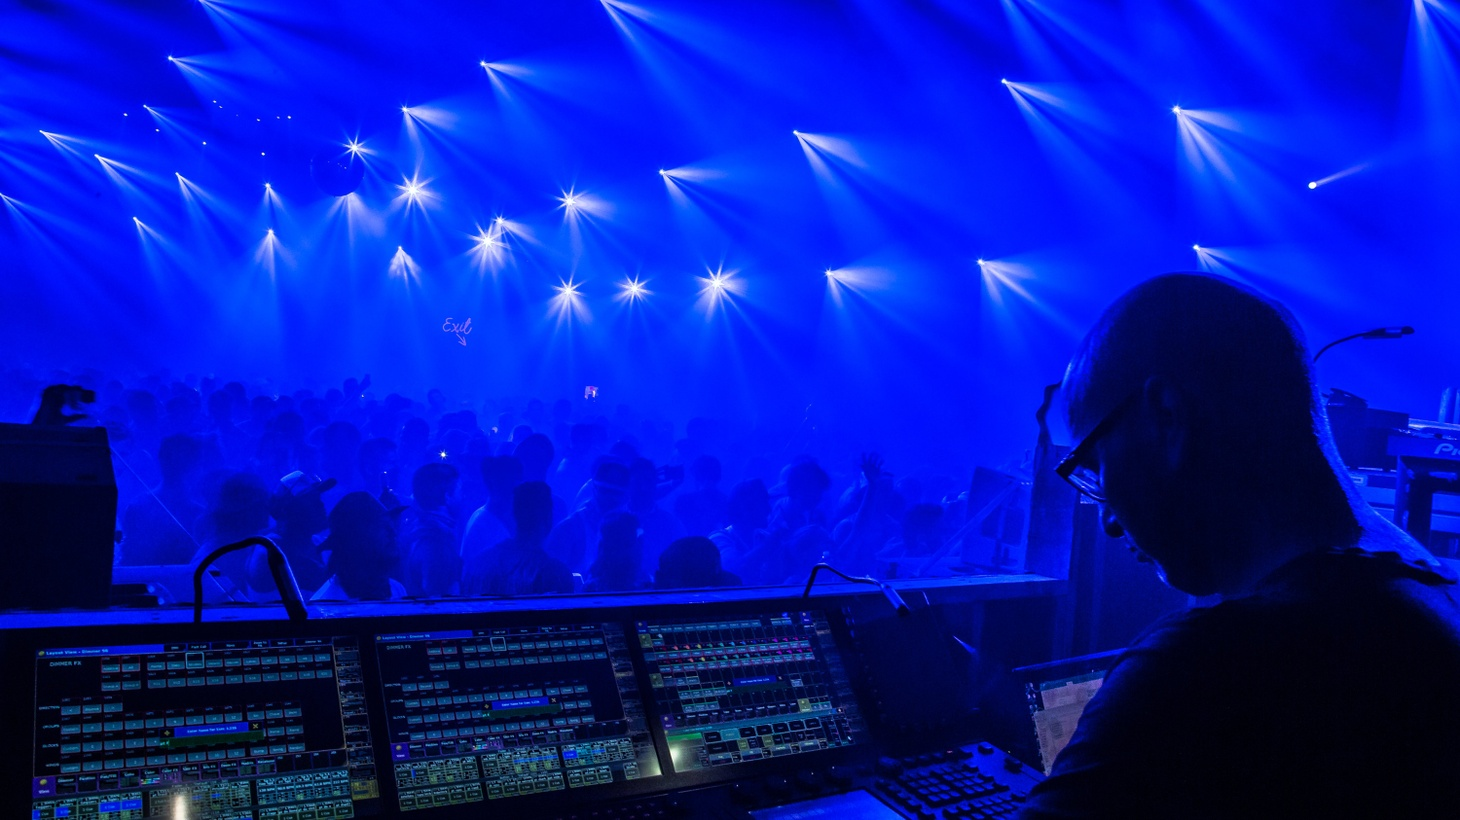 """The Women's March made a huge impact, in part because of its widely worn pink knitted """"pussyhat."""" Does the March for Science need its own unifying symbol? Lighting designer Steve Lieberman is """"the man behind the lights"""" for the country's leading electronic music festivals and nightclubs. He talks about his early experiences with rave culture, and what it takes to spark the excitement of today's EDM fans."""